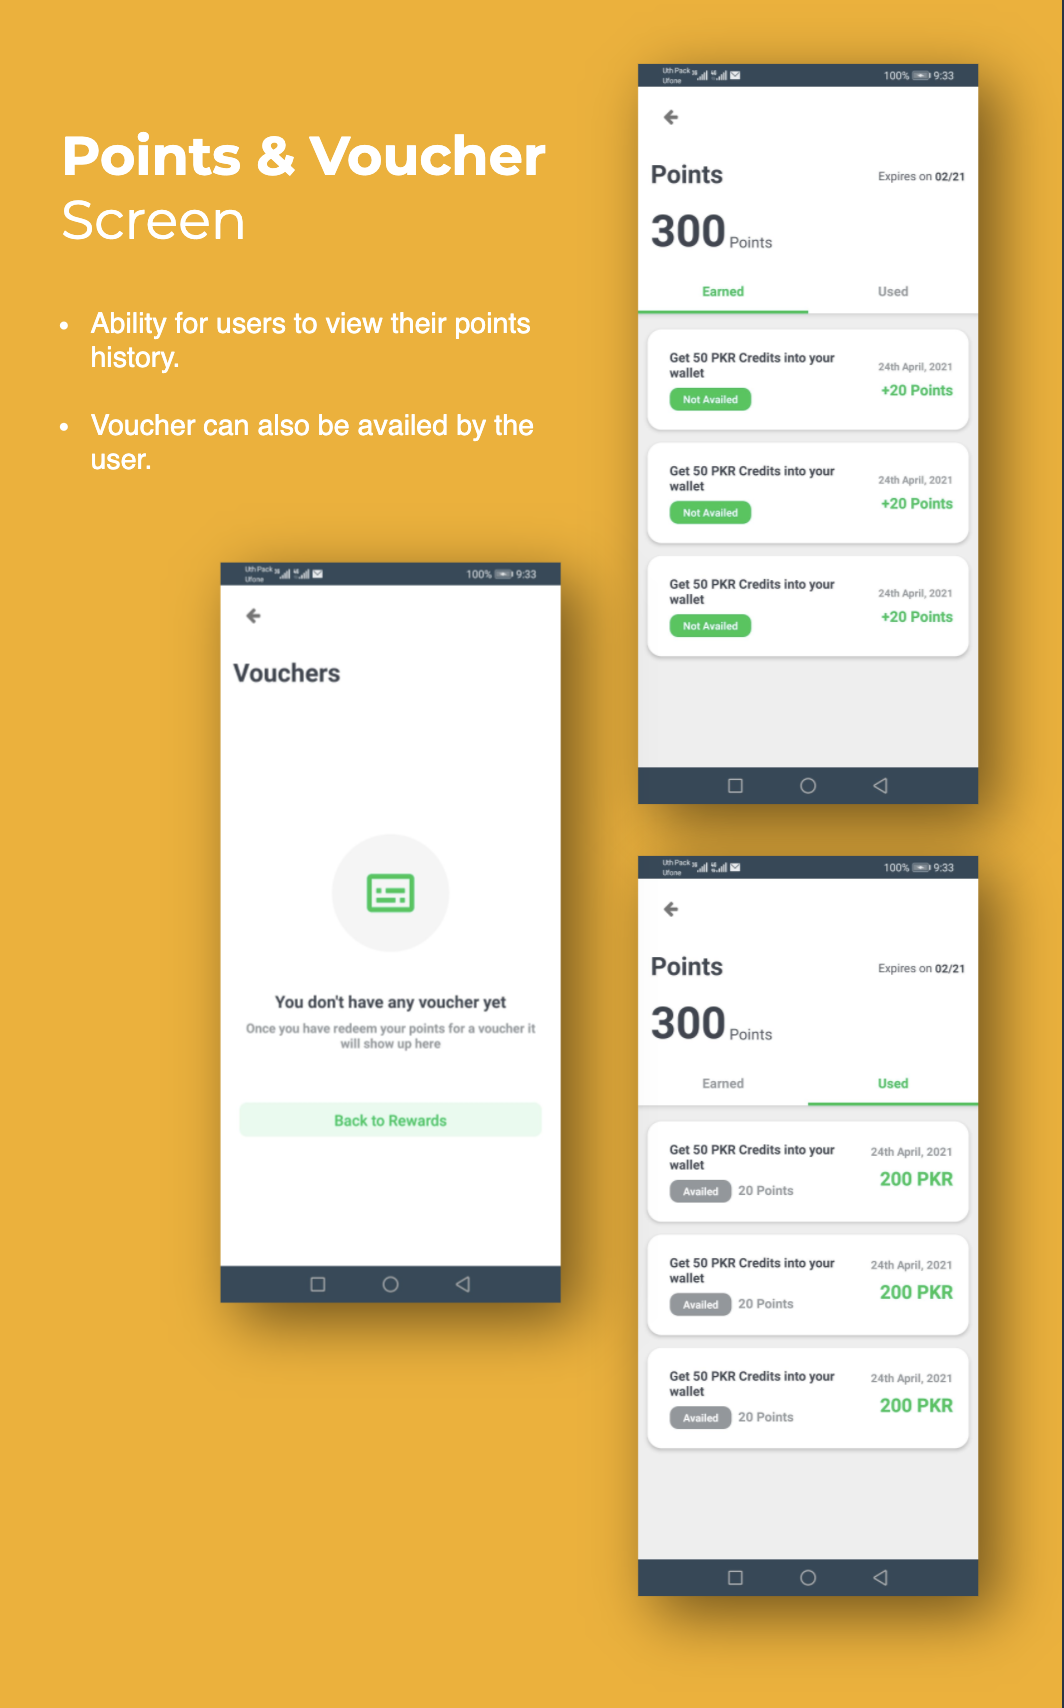 Find Mechanic - Premium React Native Full Application Template for iOS & Android - 21